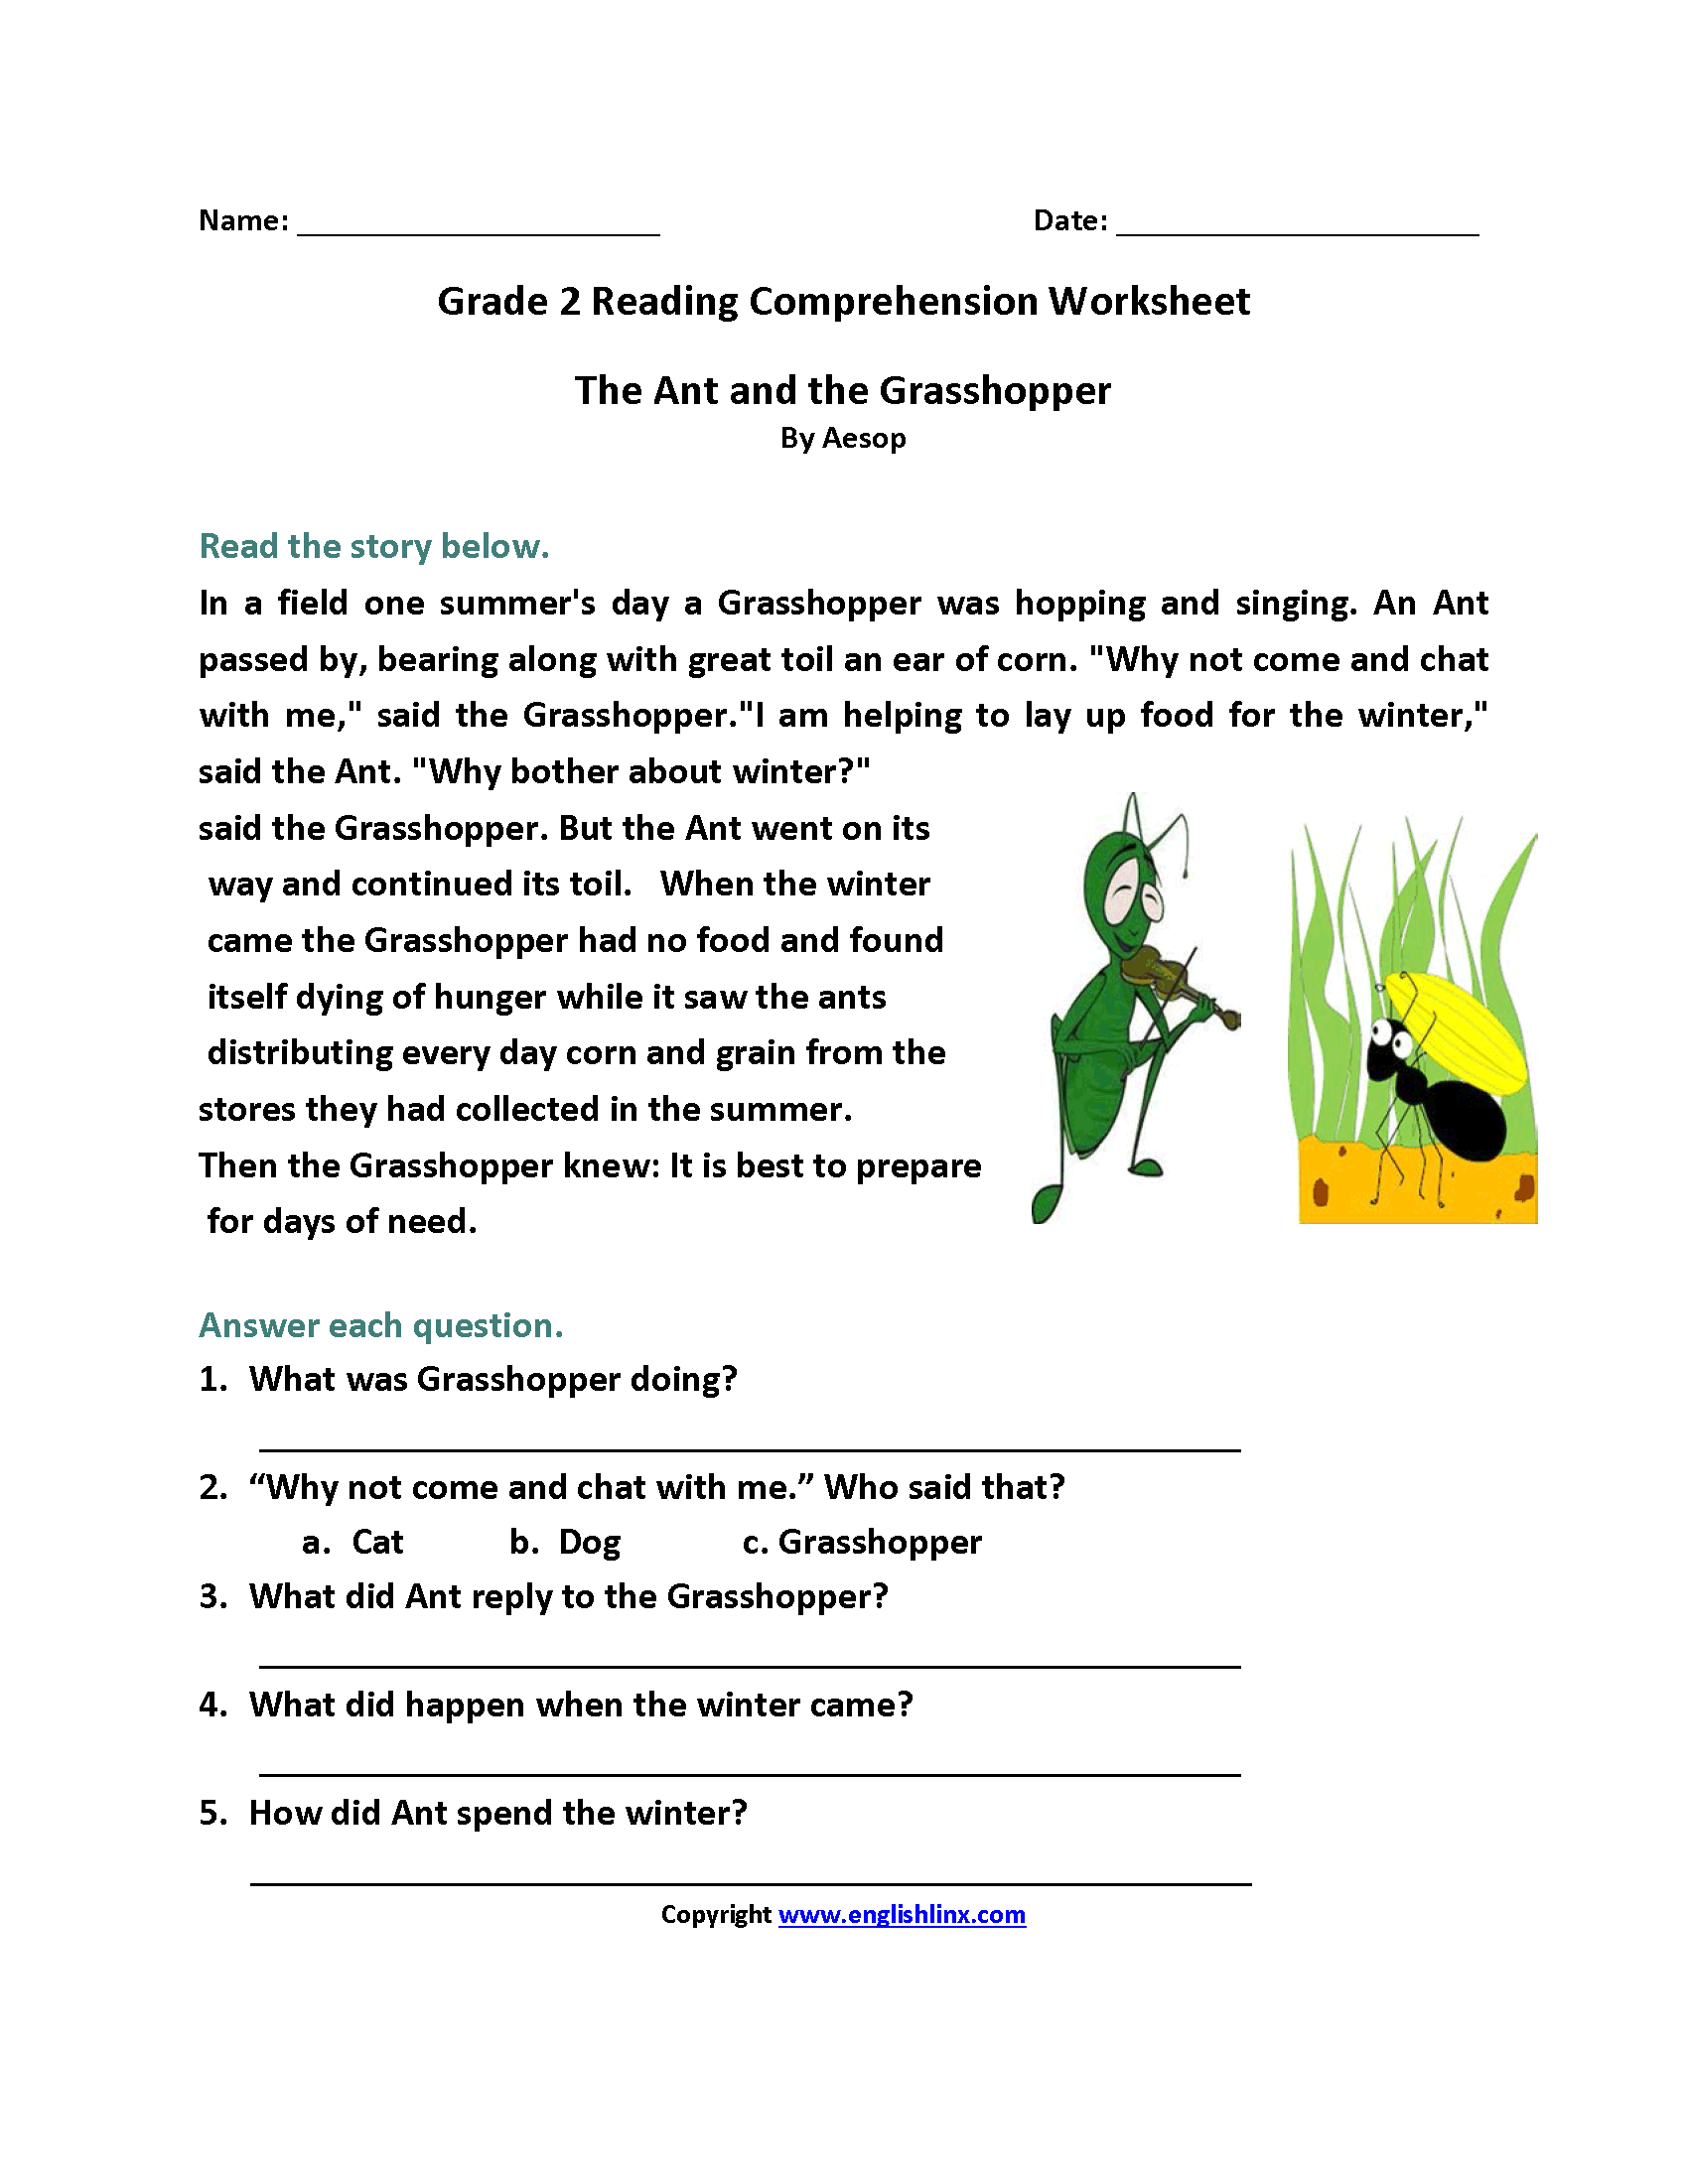 Worksheets Reading Comprehension Worksheets 2nd Grade english worksheets reading second grade worksheets